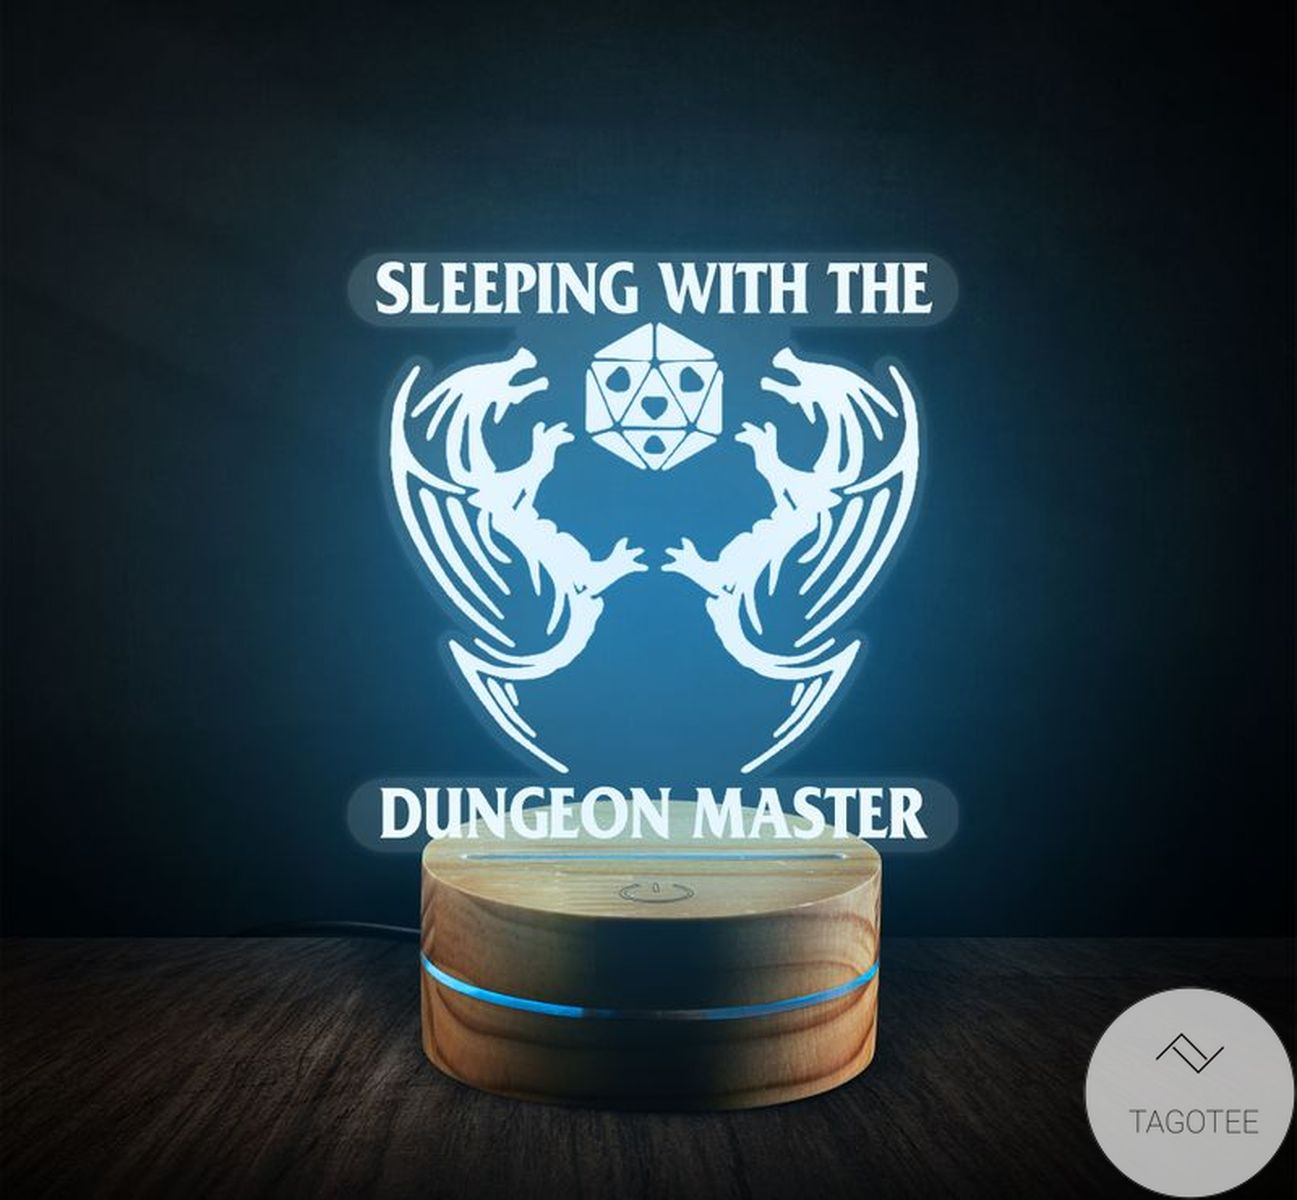 Sleeping With The Dungeon Master D&D UV LED Lamp, Night Light Lamps